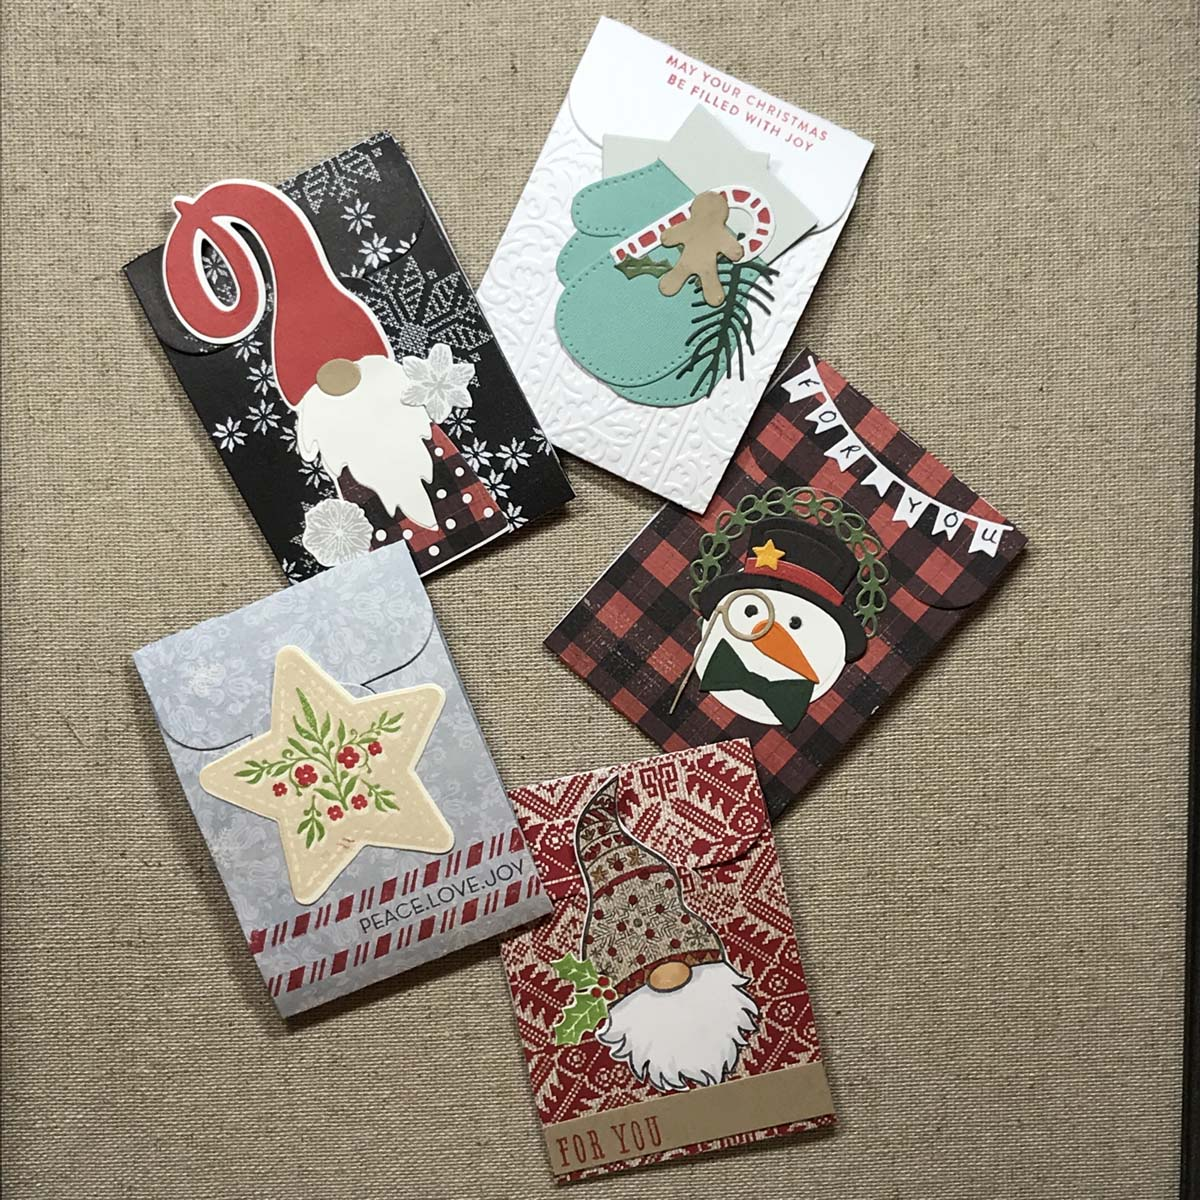 Five custom gift card holders featuring holiday themed decorations